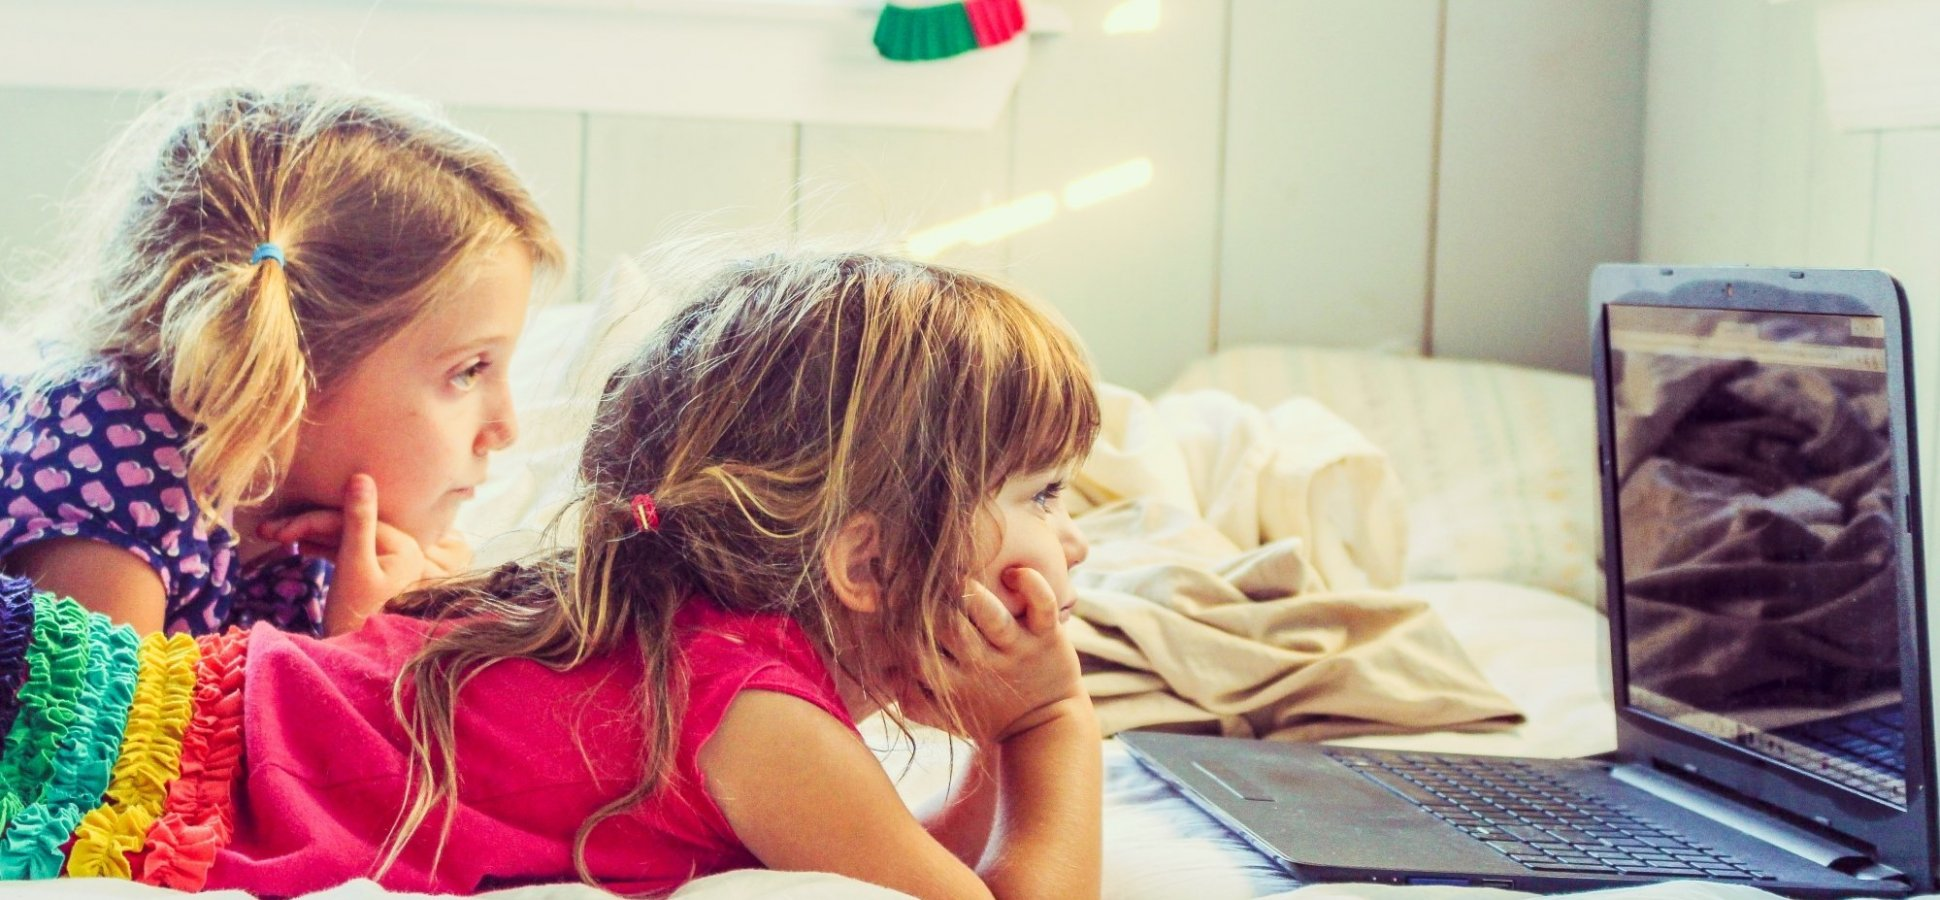 Kids Turn To Screens To Cope With >> Kids Whose Parents Limit Screen Time Do Worse In College New Study